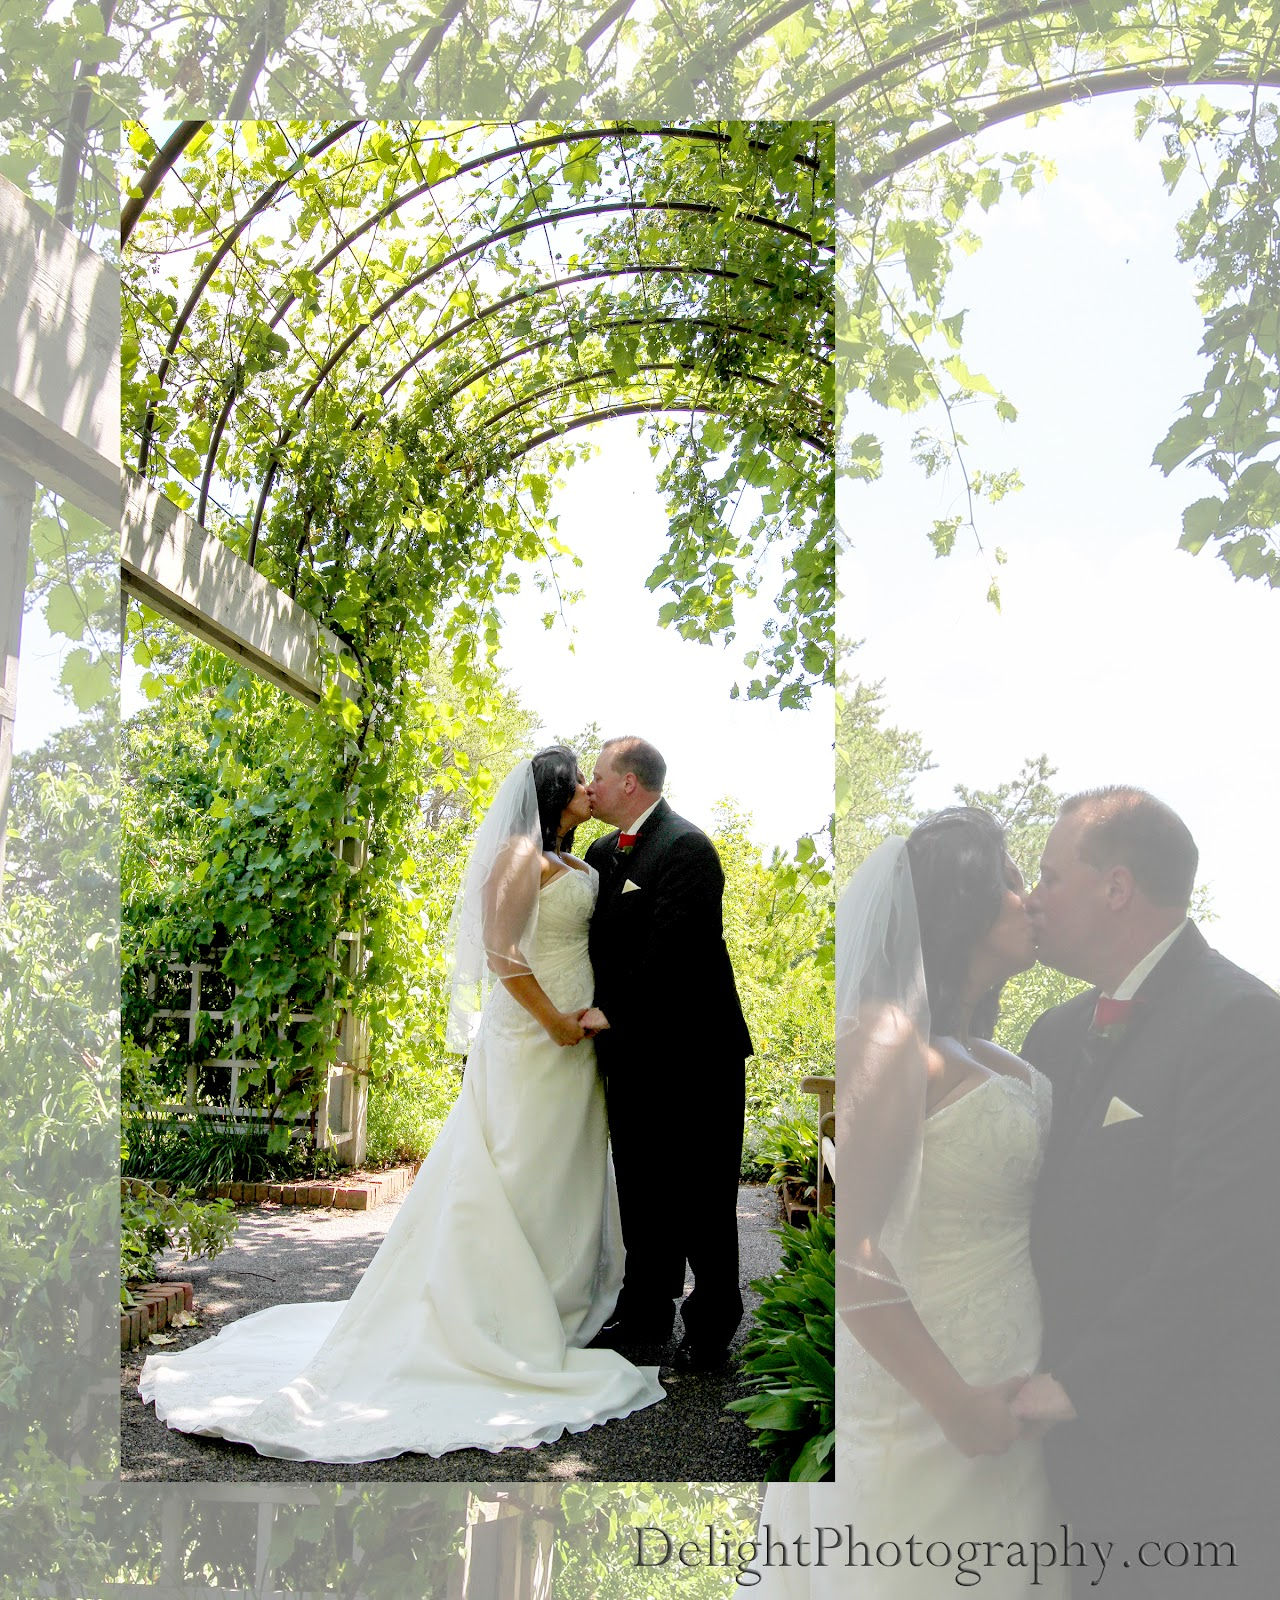 Minnesota Wedding Ceremony Locations: Wedding At Minnesota Landscape Arboretum